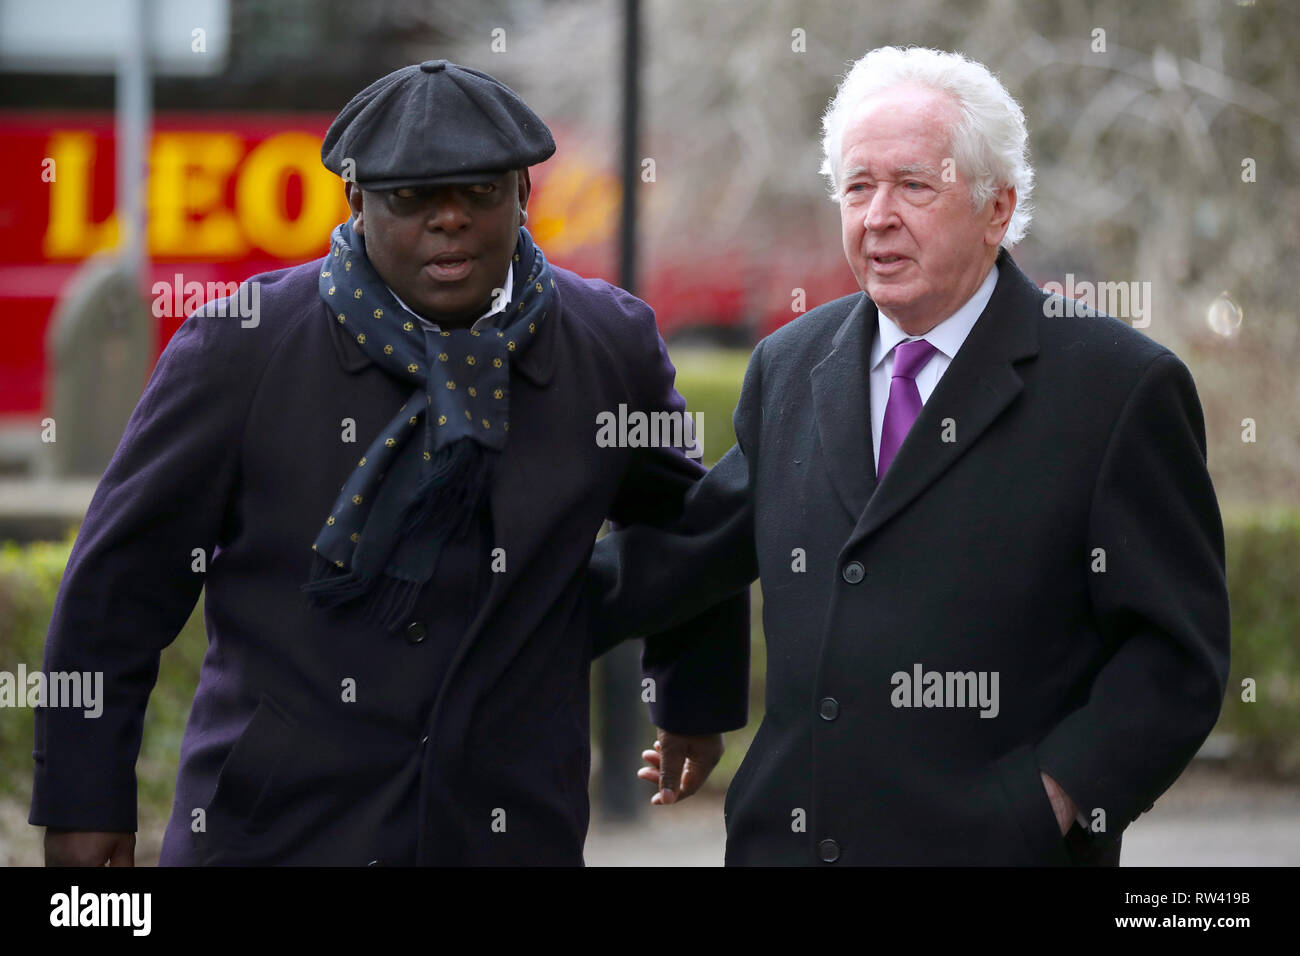 Retired Stoke City footballer Garth Crooks (left) and Sports journalist Jeff Powell arrive at the funeral service for Gordon Banks at Stoke Minster. - Stock Image